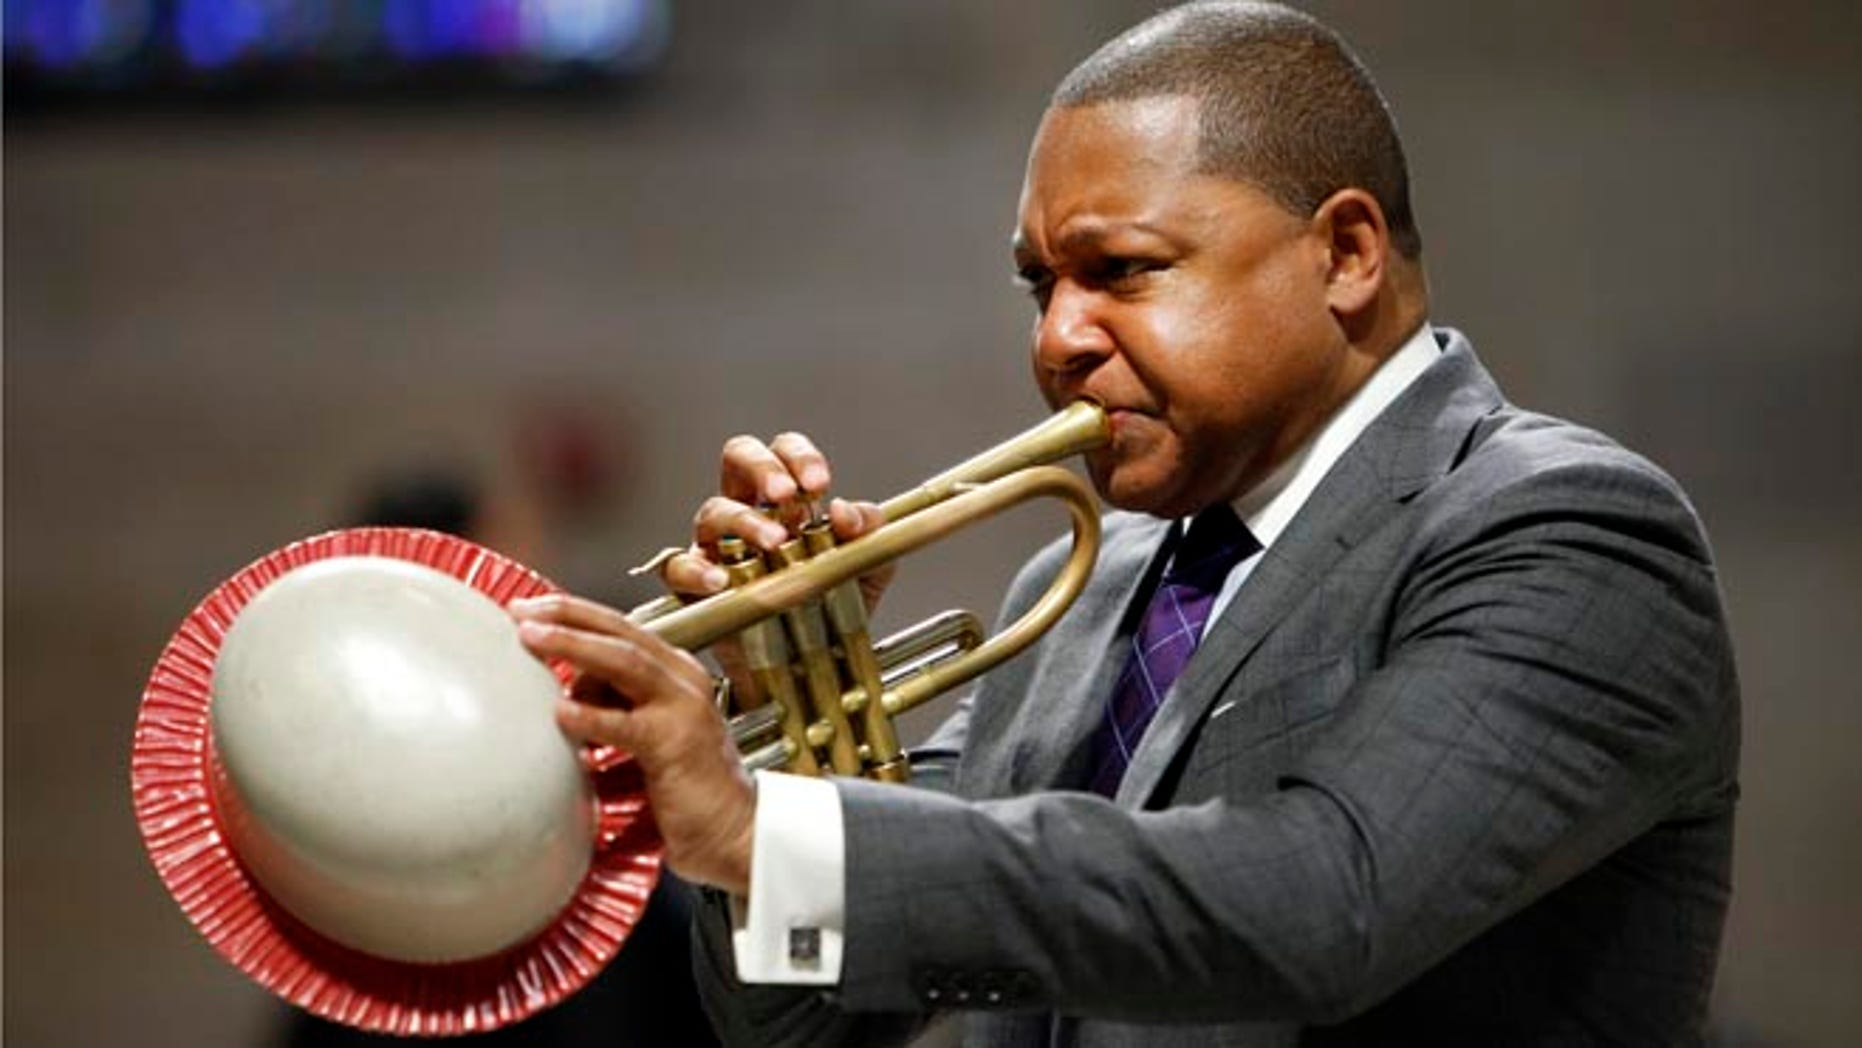 FILE - In this Sept. 20, 2014, file photo, musician Wynton Marsalis performs during a memorial service for actress Ruby Dee at The Riverside Church in New York. It was announced Wednesday, March 11, 2015, that Marsalis is scratching a concert in Venezuela amid rising tensions between Venezuela and the U.S. that are making it harder for U.S. citizens to travel to the South American country. (AP Photo/Jason DeCrow, File)